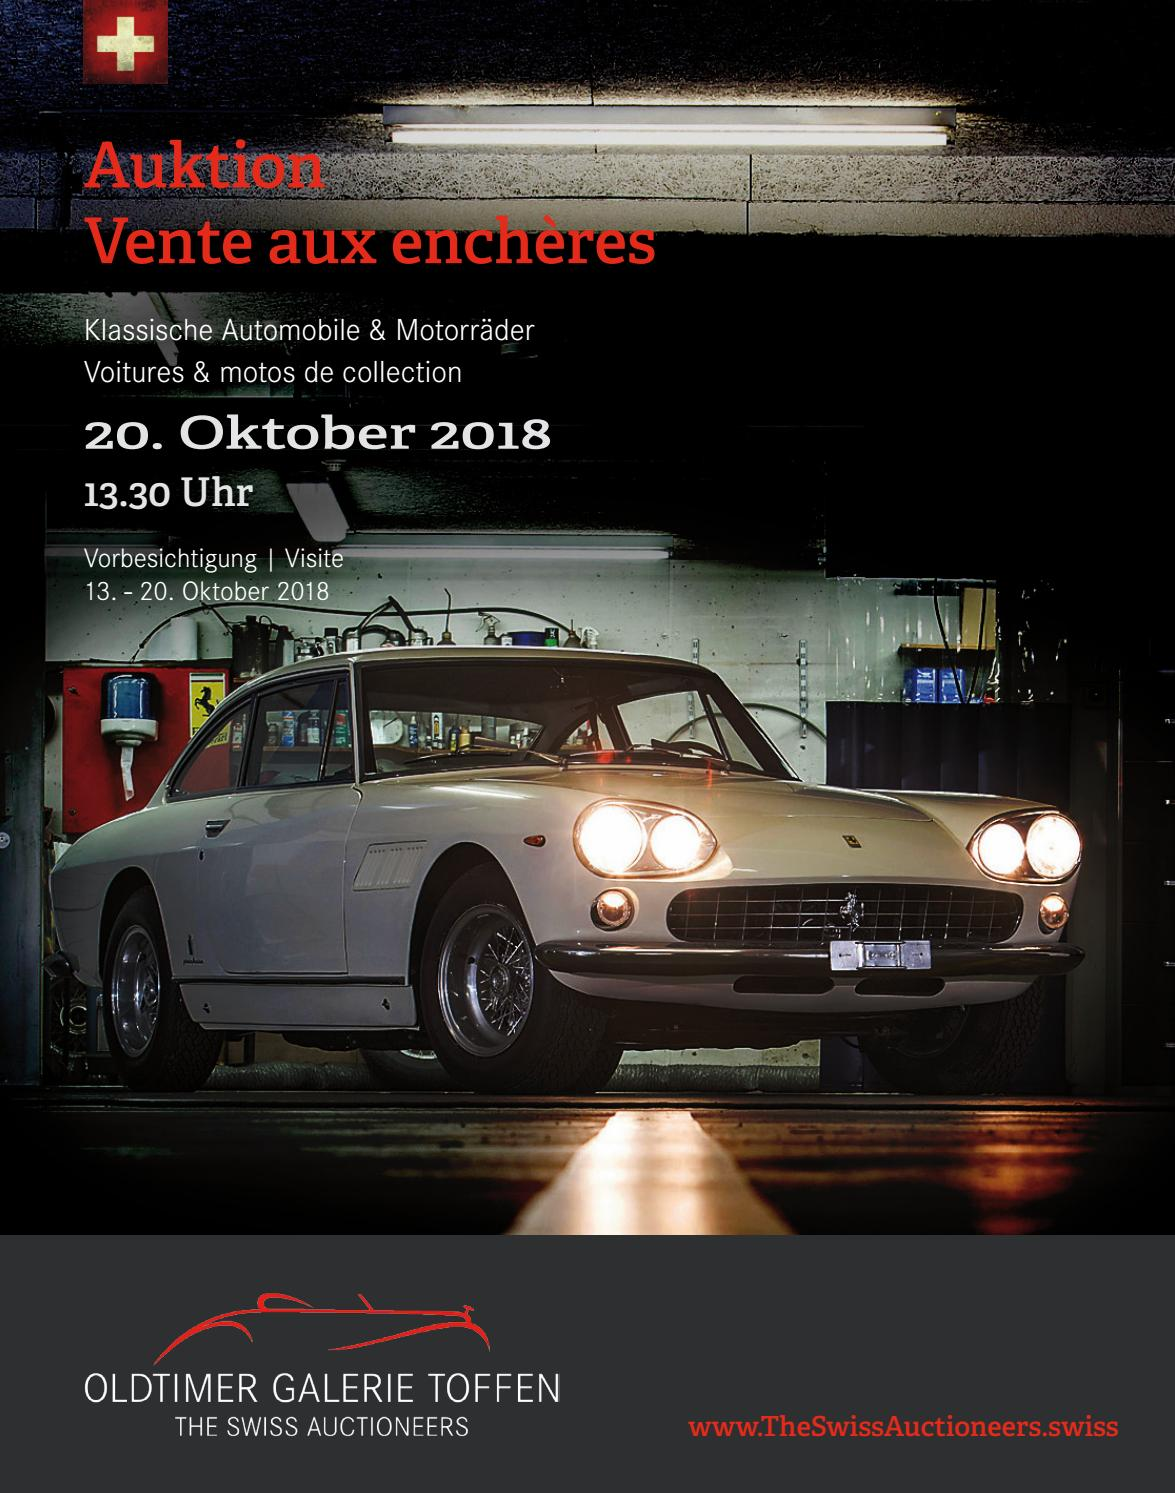 CLASSIC CAR AUCTION On October 20th 2018 By Oldtimer Galerie International GmbH